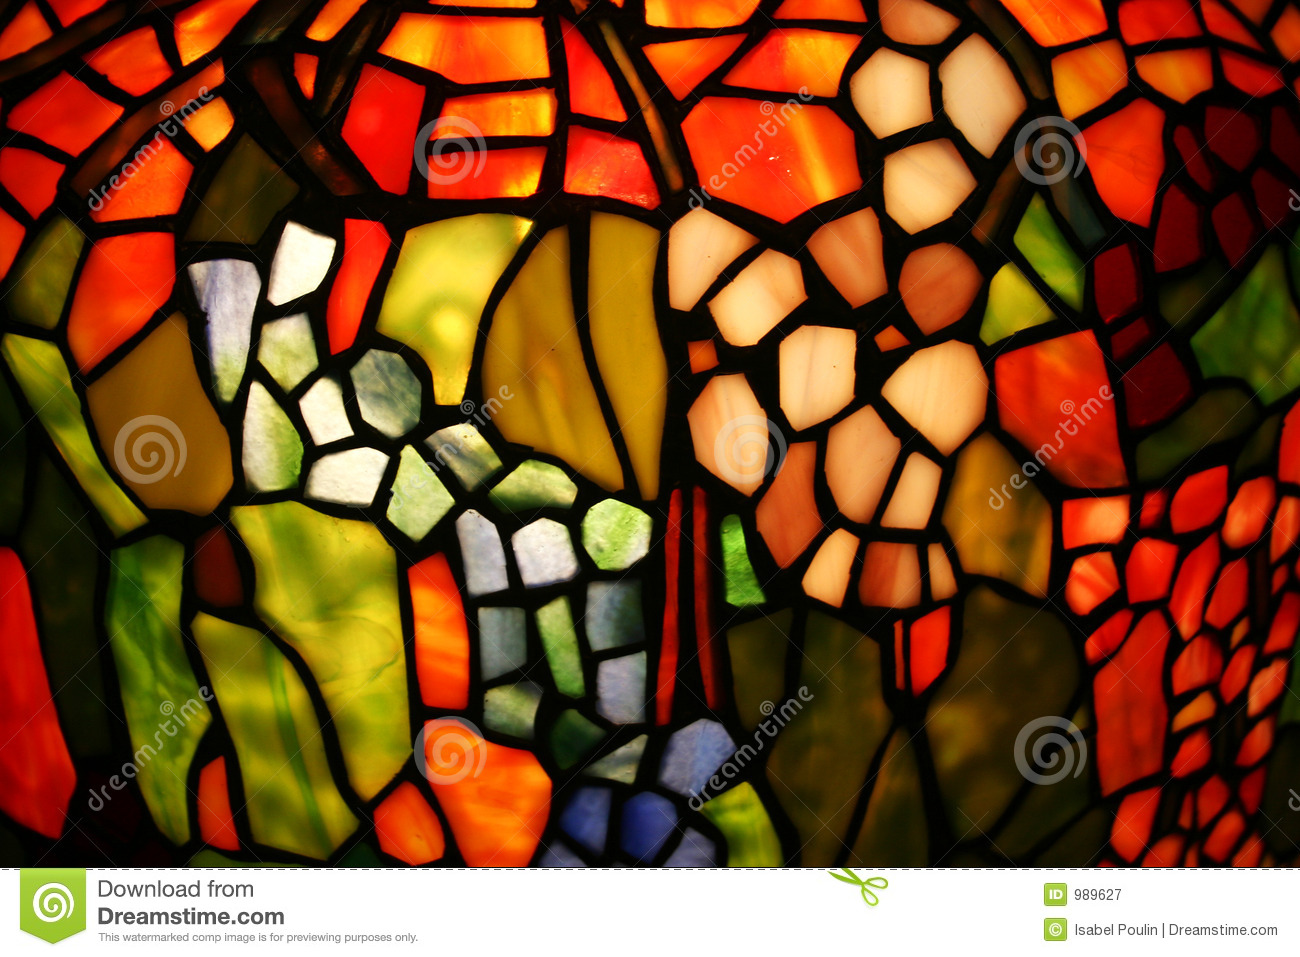 Colorful Stained Glass Stock Image. Image Of Close, Green